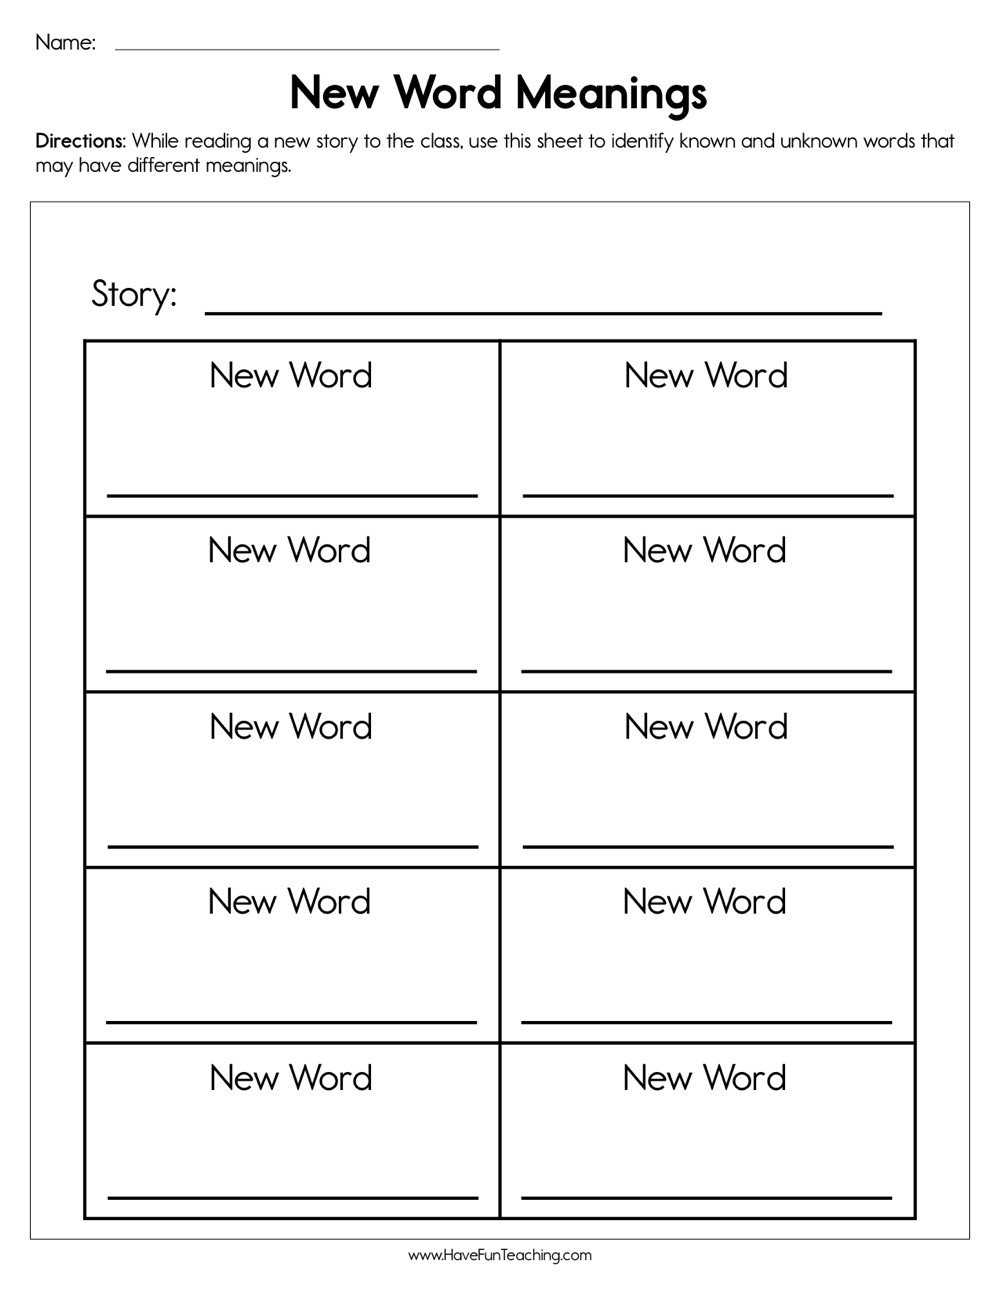 Words with Multiple Meanings Worksheets New Word Meanings Worksheet